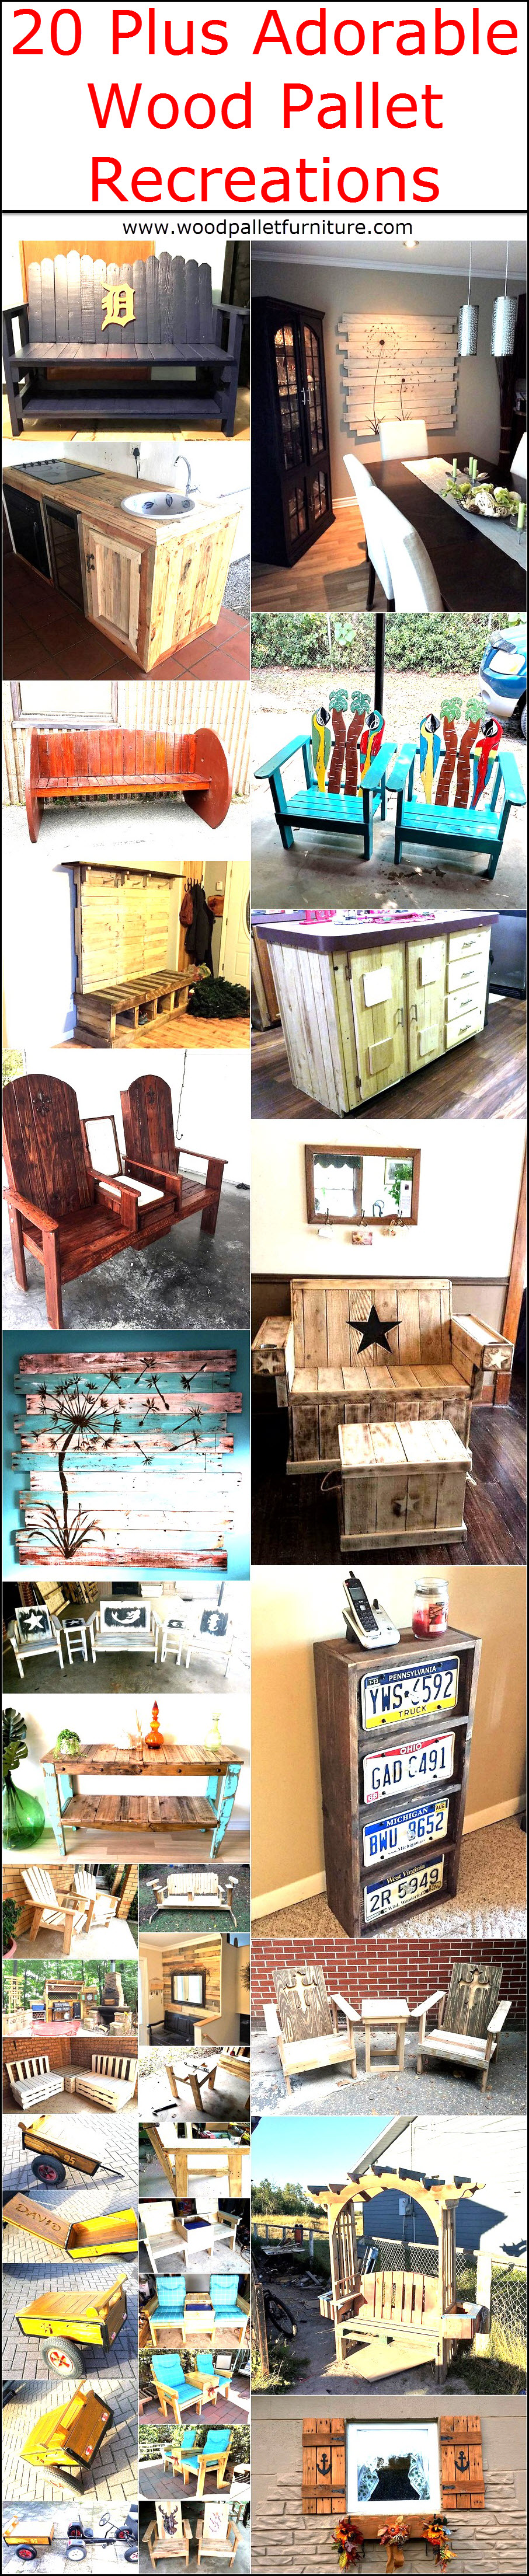 20 Plus Adorable Wood Pallet Recreations